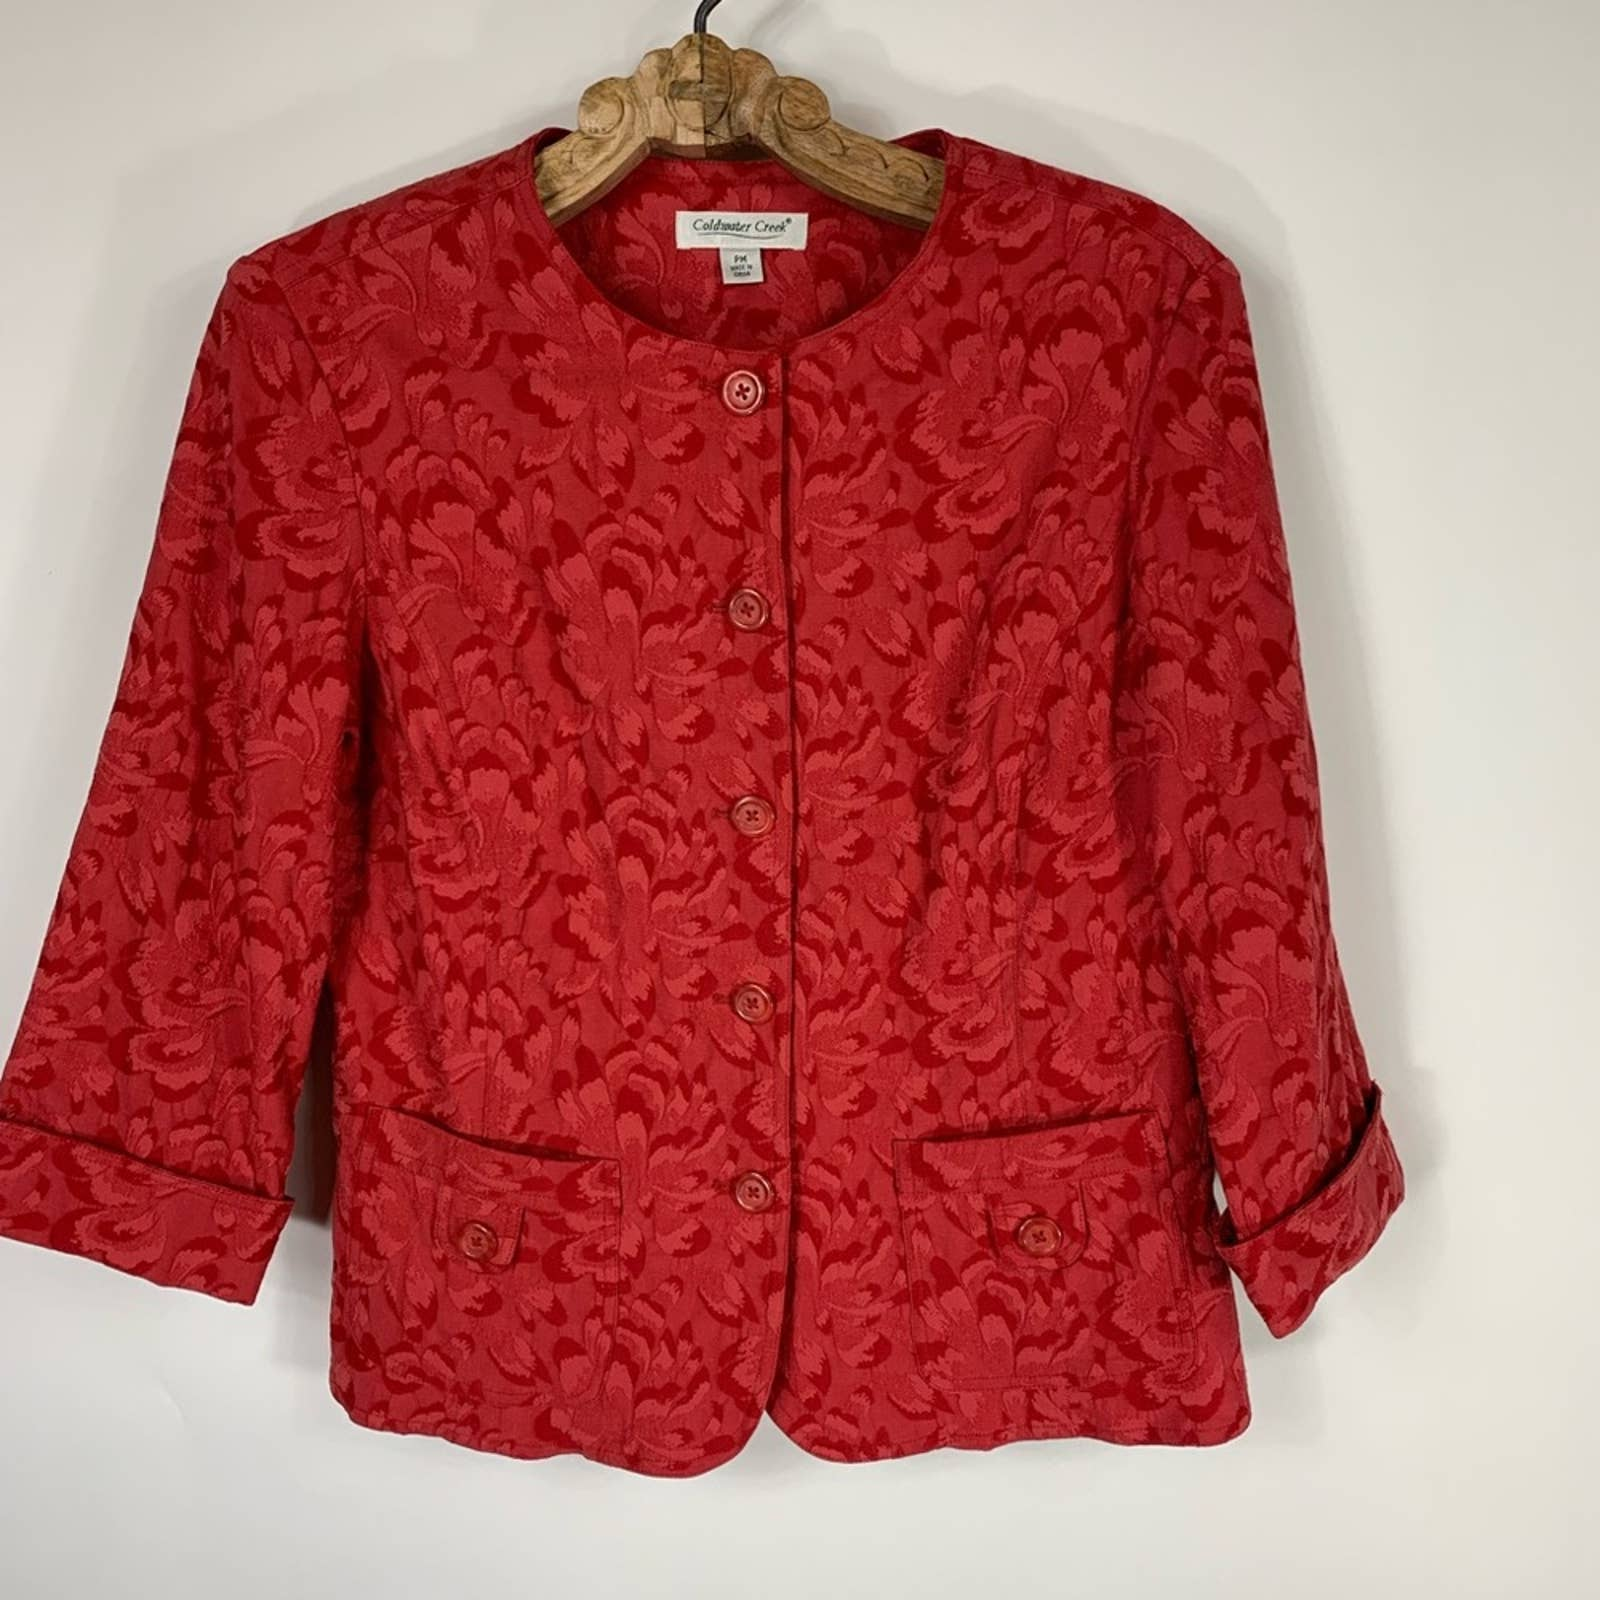 Product Image 1 - Coldwater Creek Red Tapestry Jacket